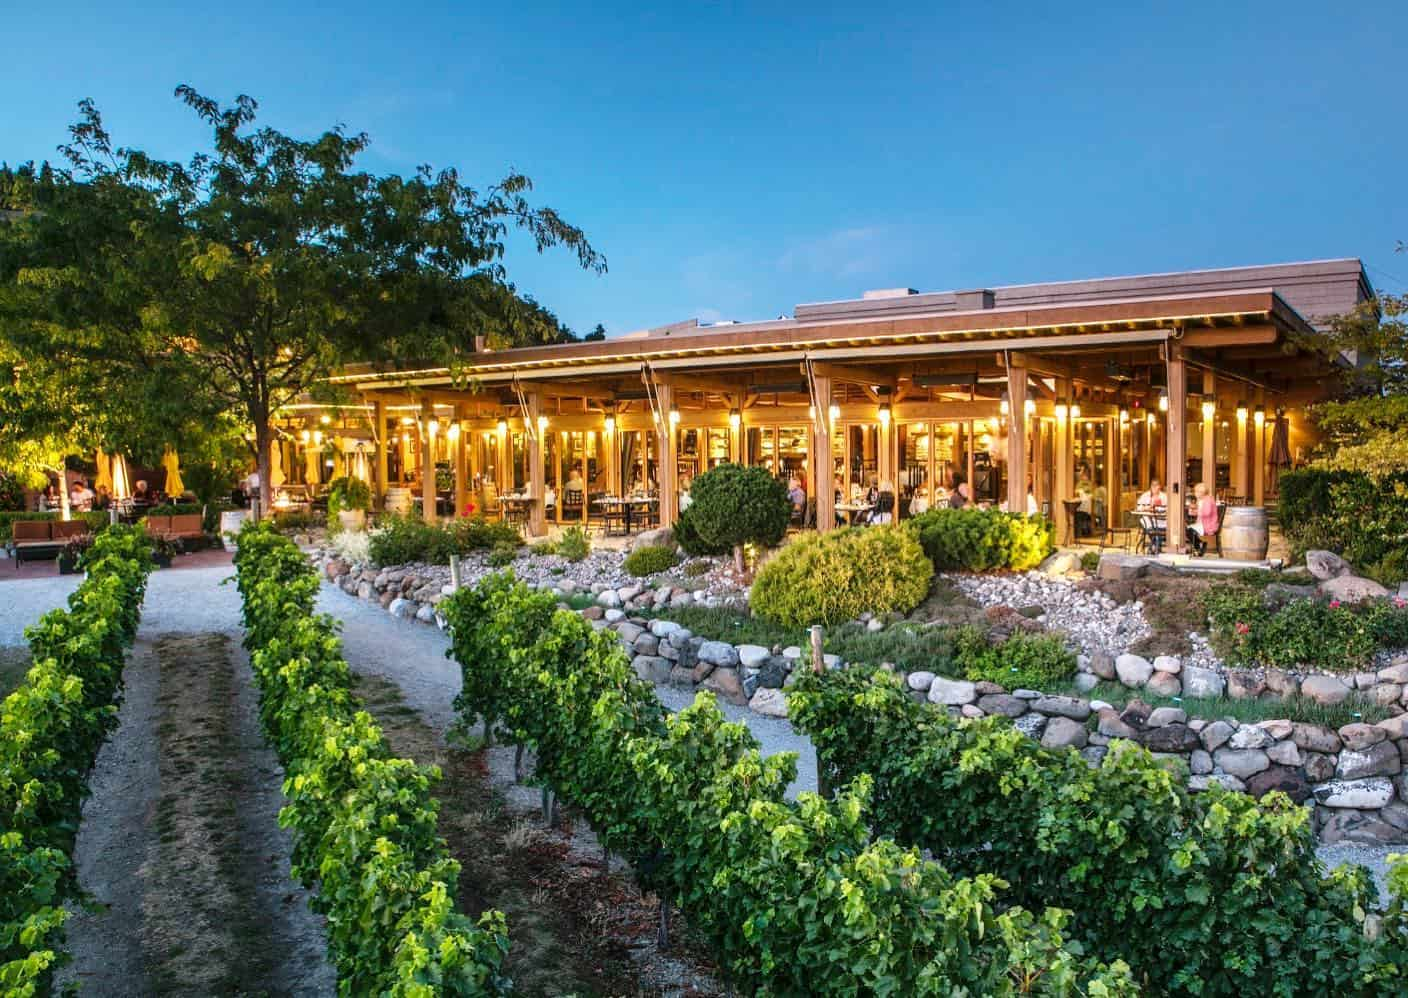 One of the original Okanagan winery restaurants, the Old Vines restaurant has built a reputation for serving spot-on food in a beautiful setting.